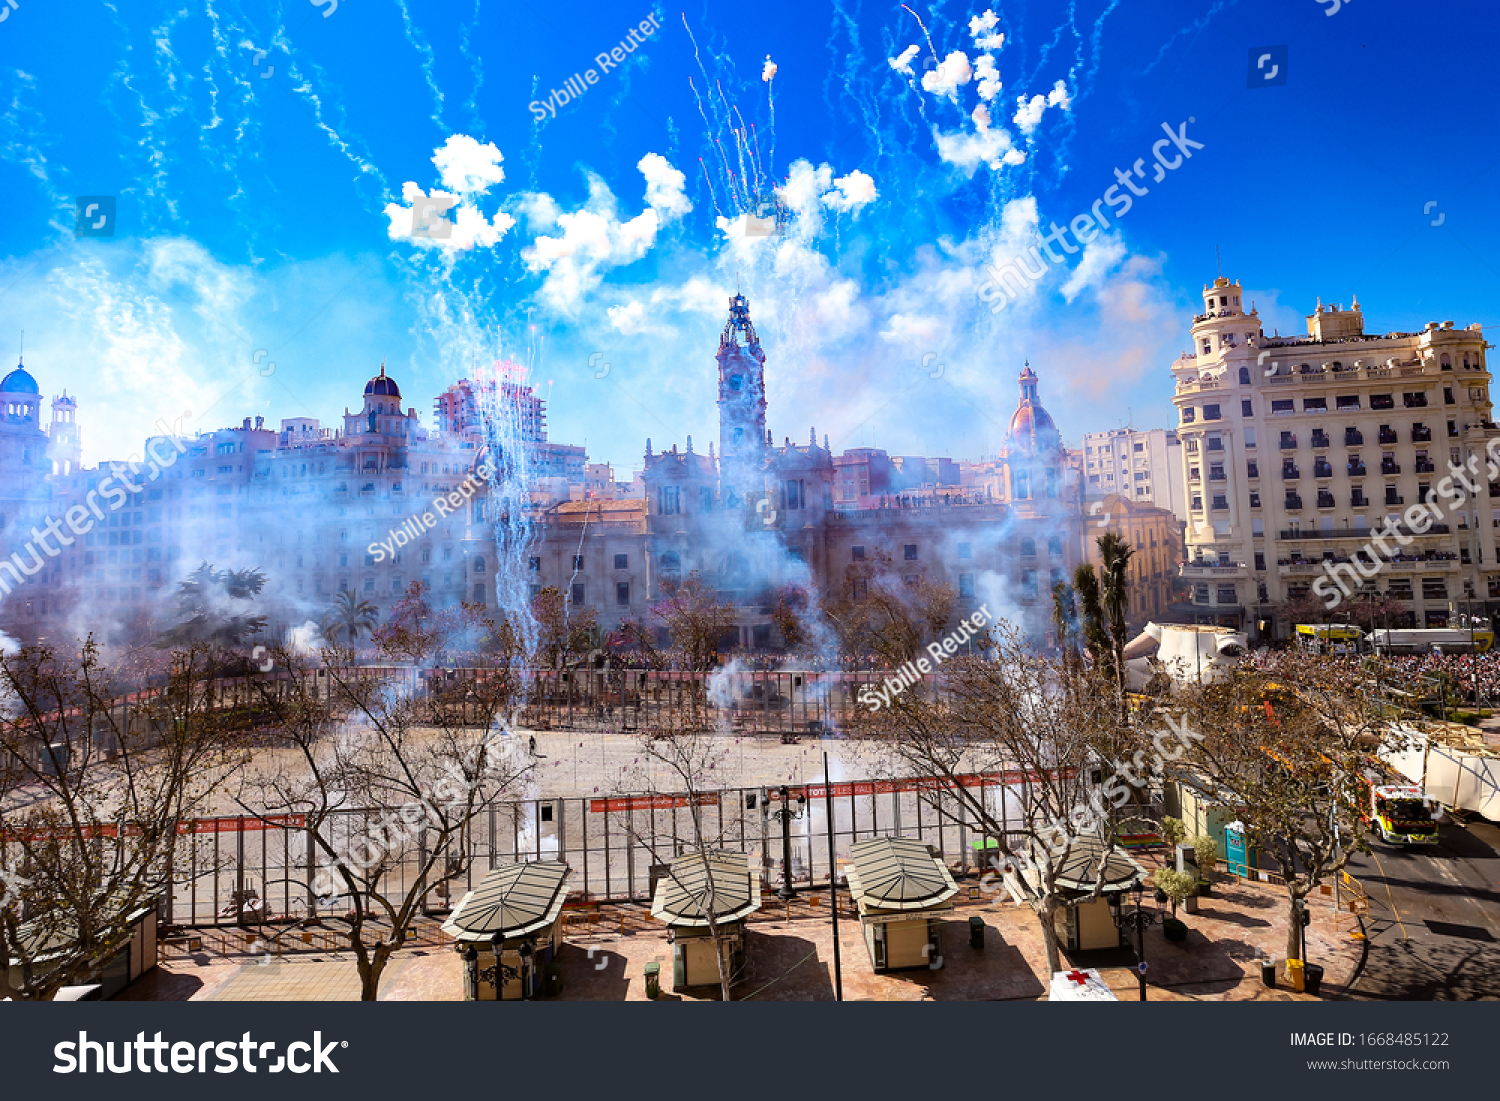 stock-photo-valencia-spain-march-masclet